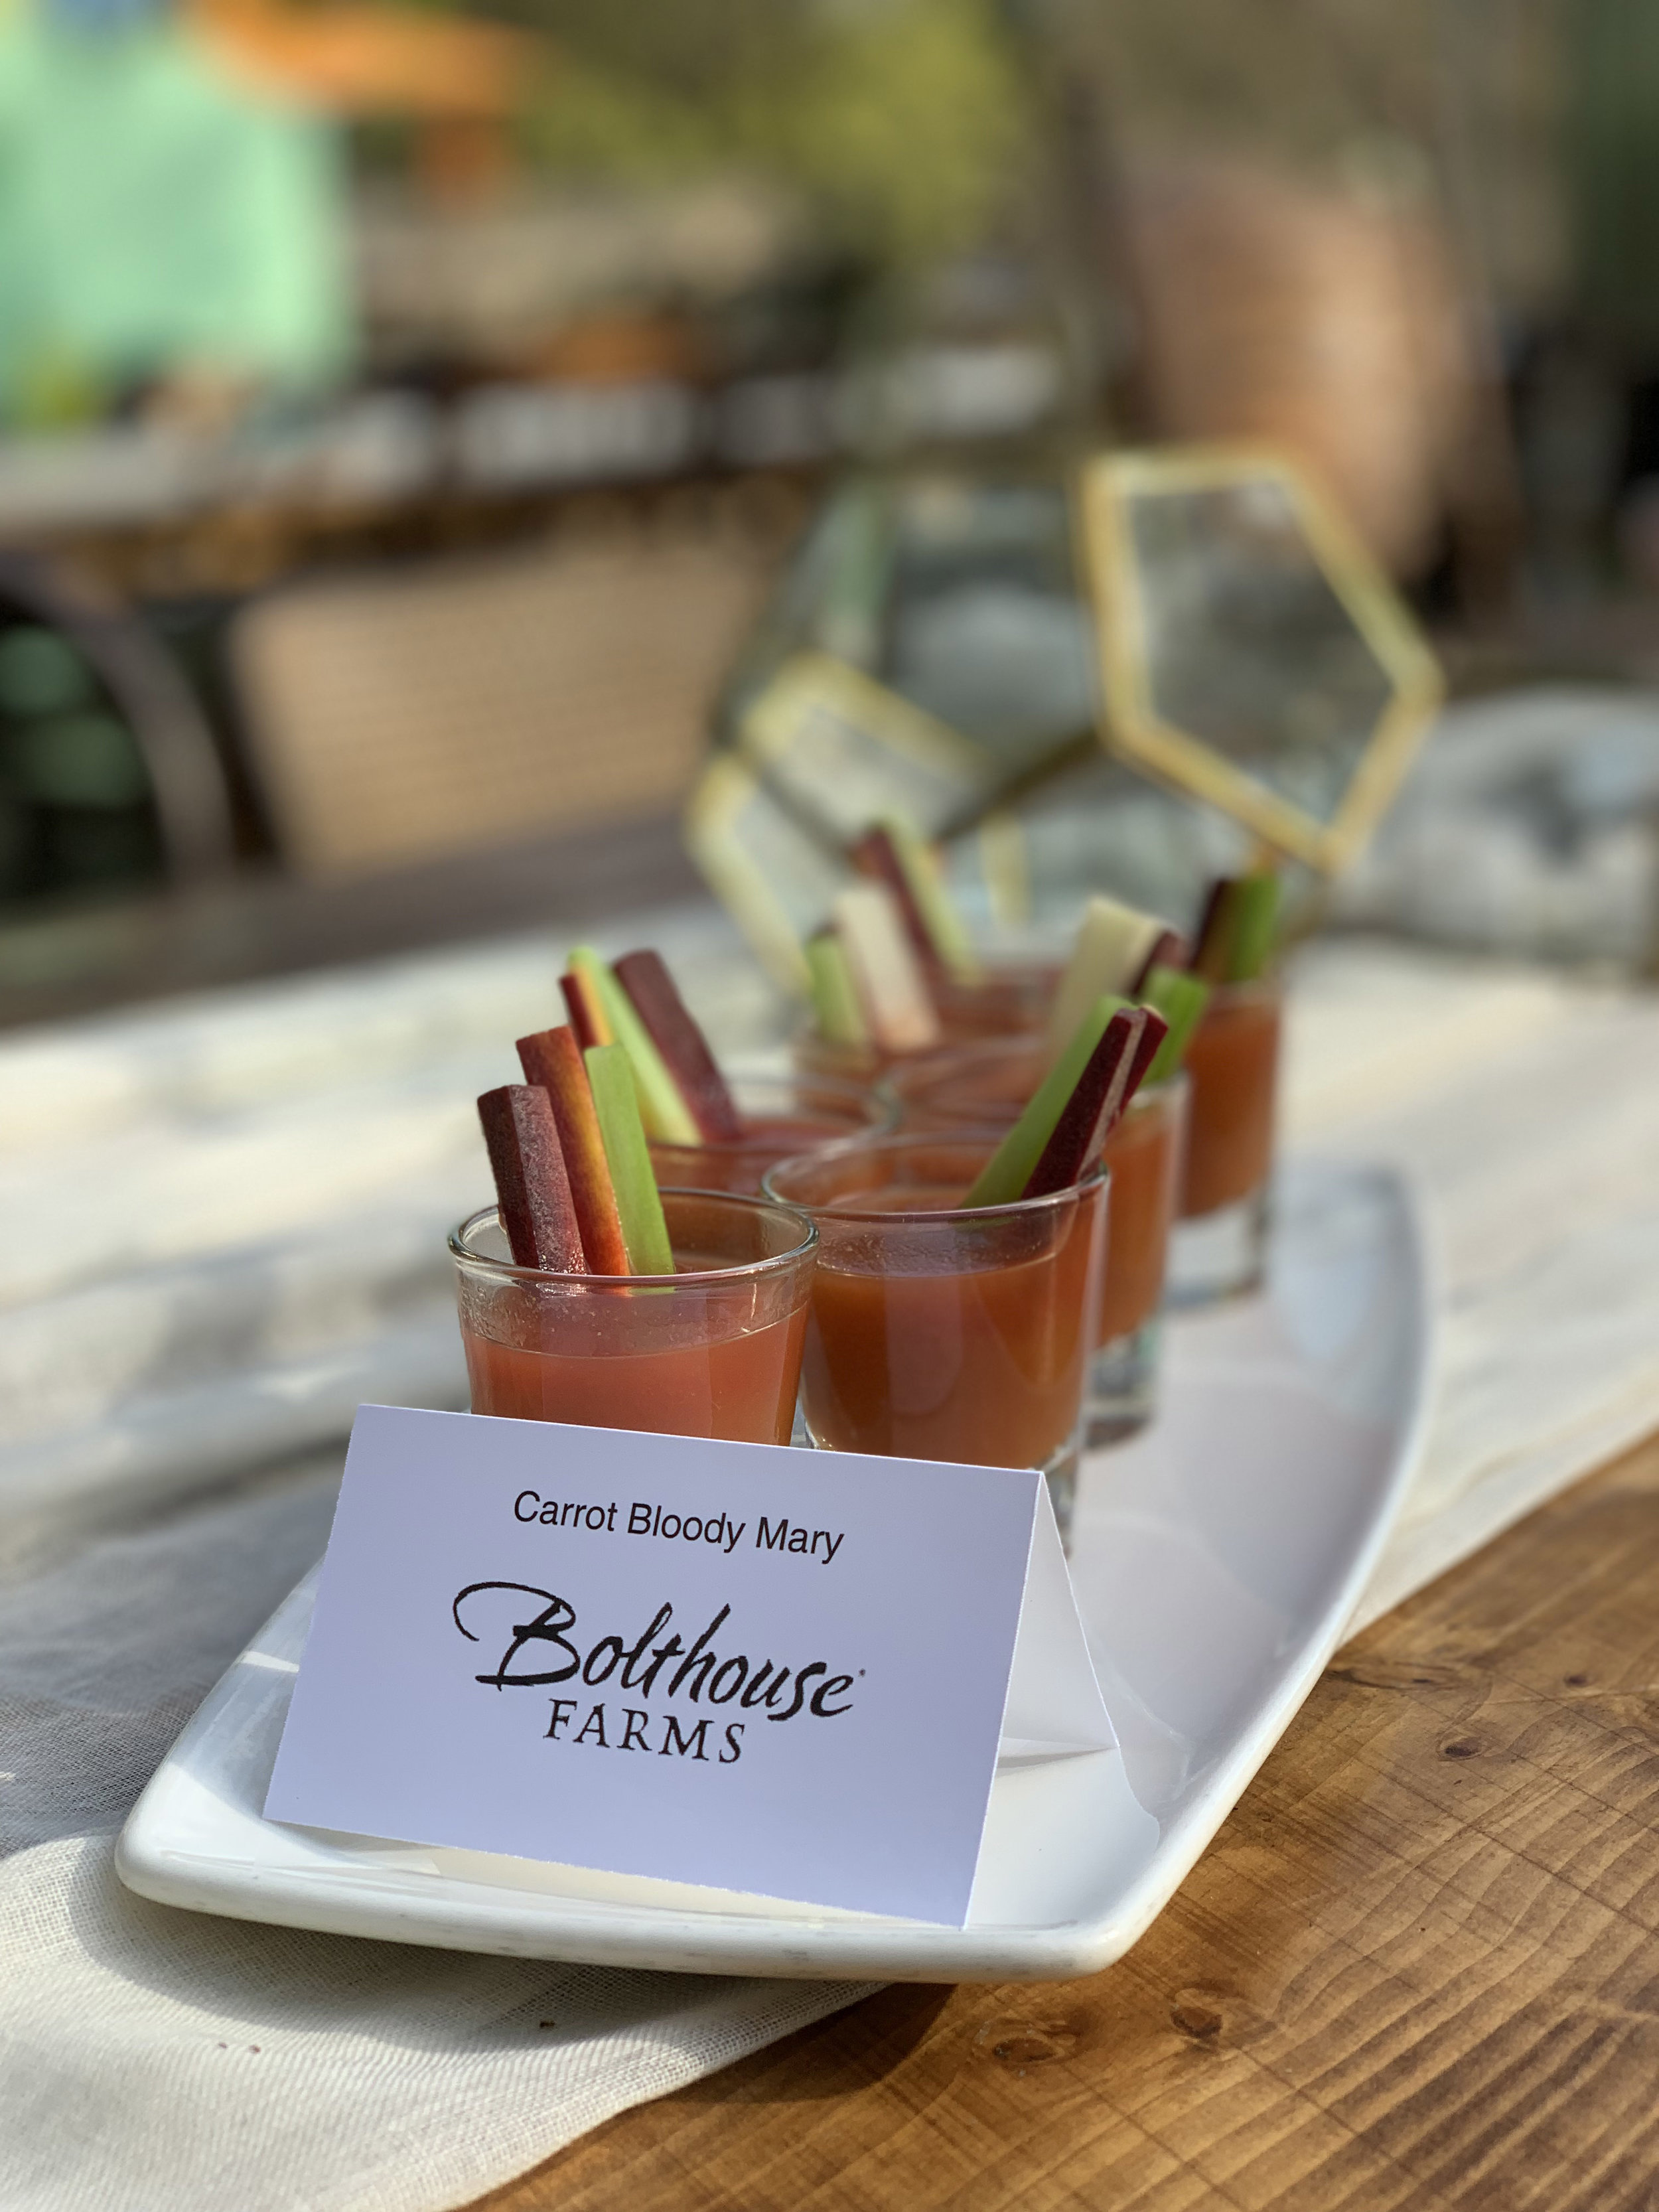 Carrot Bloody Mary